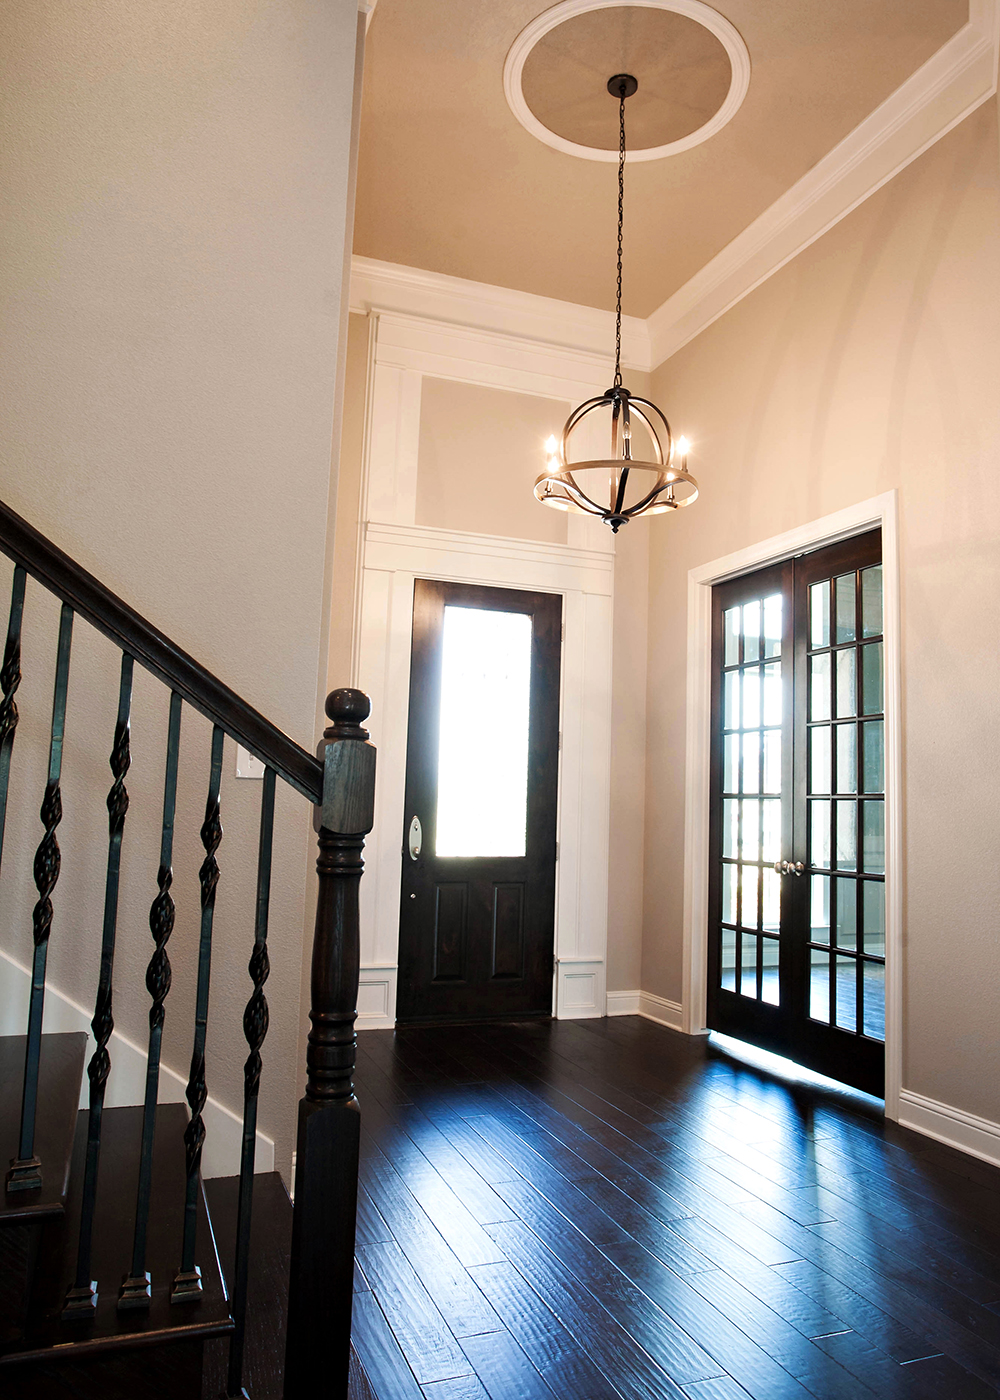 The Patsy Interior Entry with Hanging Light